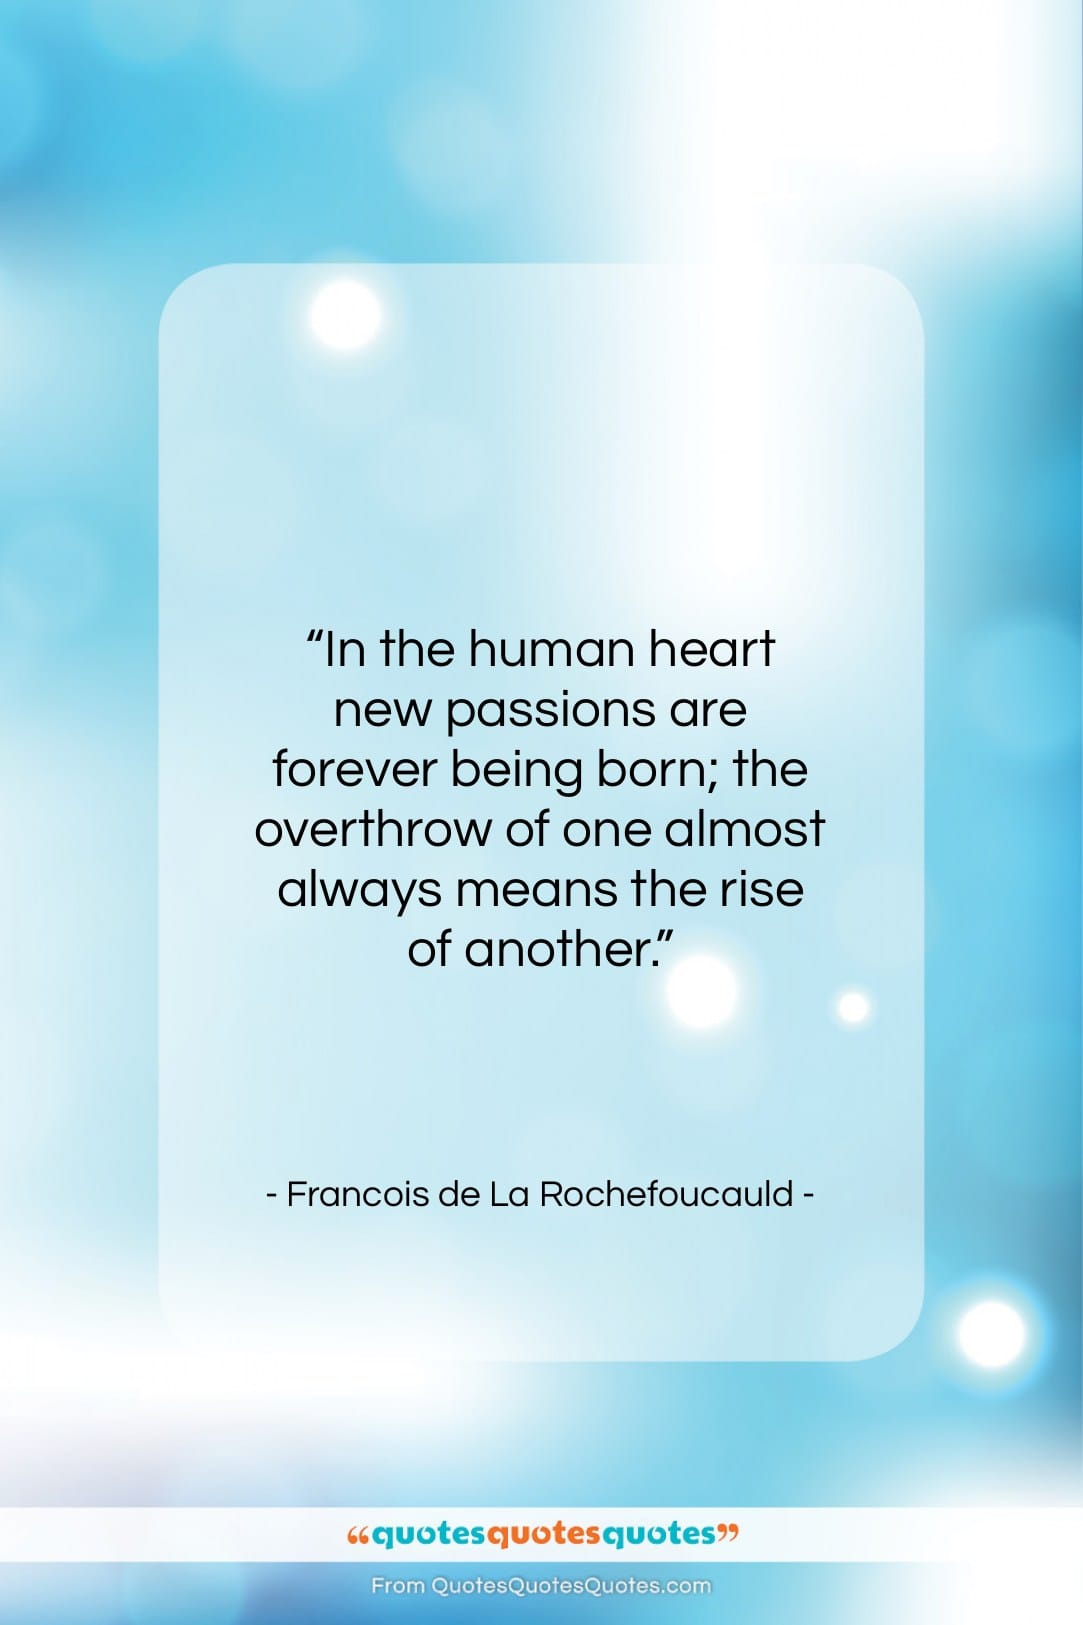 """Francois de La Rochefoucauld quote: """"In the human heart new passions are…""""- at QuotesQuotesQuotes.com"""